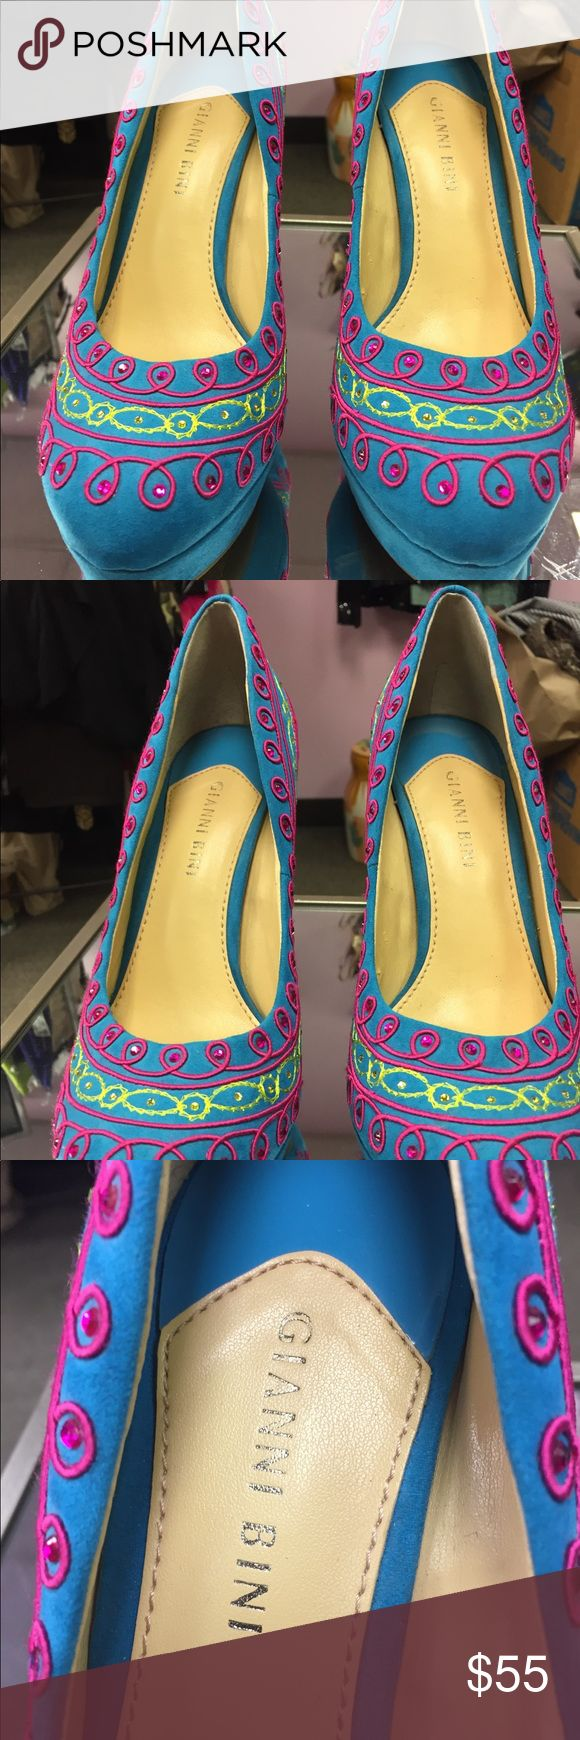 Ladies shoes/Gianni bini Turquoise suede heel with fusha and yellow deco excellent condition Gianni Bini Shoes Heels